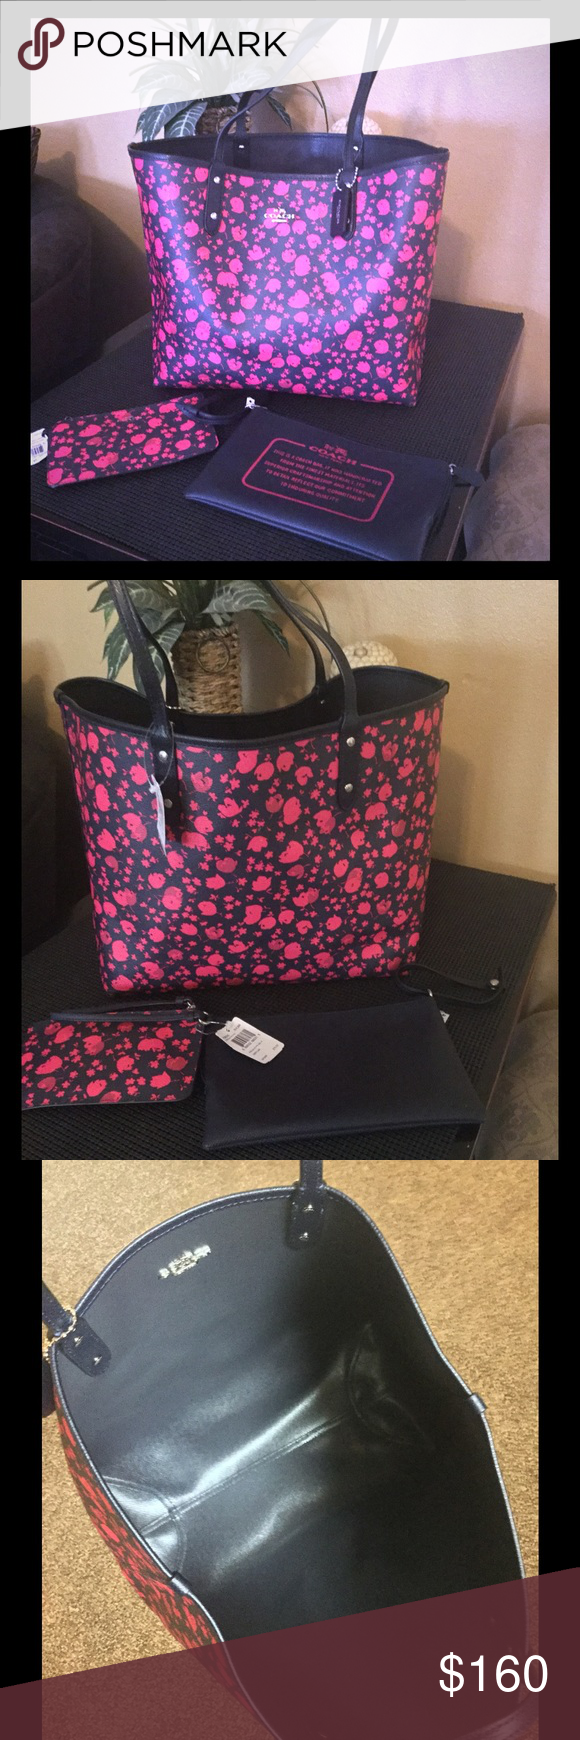 c2f7c7aac Authentic coach tote and wristlets REVERSIBLE CITY TOTE IN PRAIRIE CALICO  PRINT CANVAS COACH